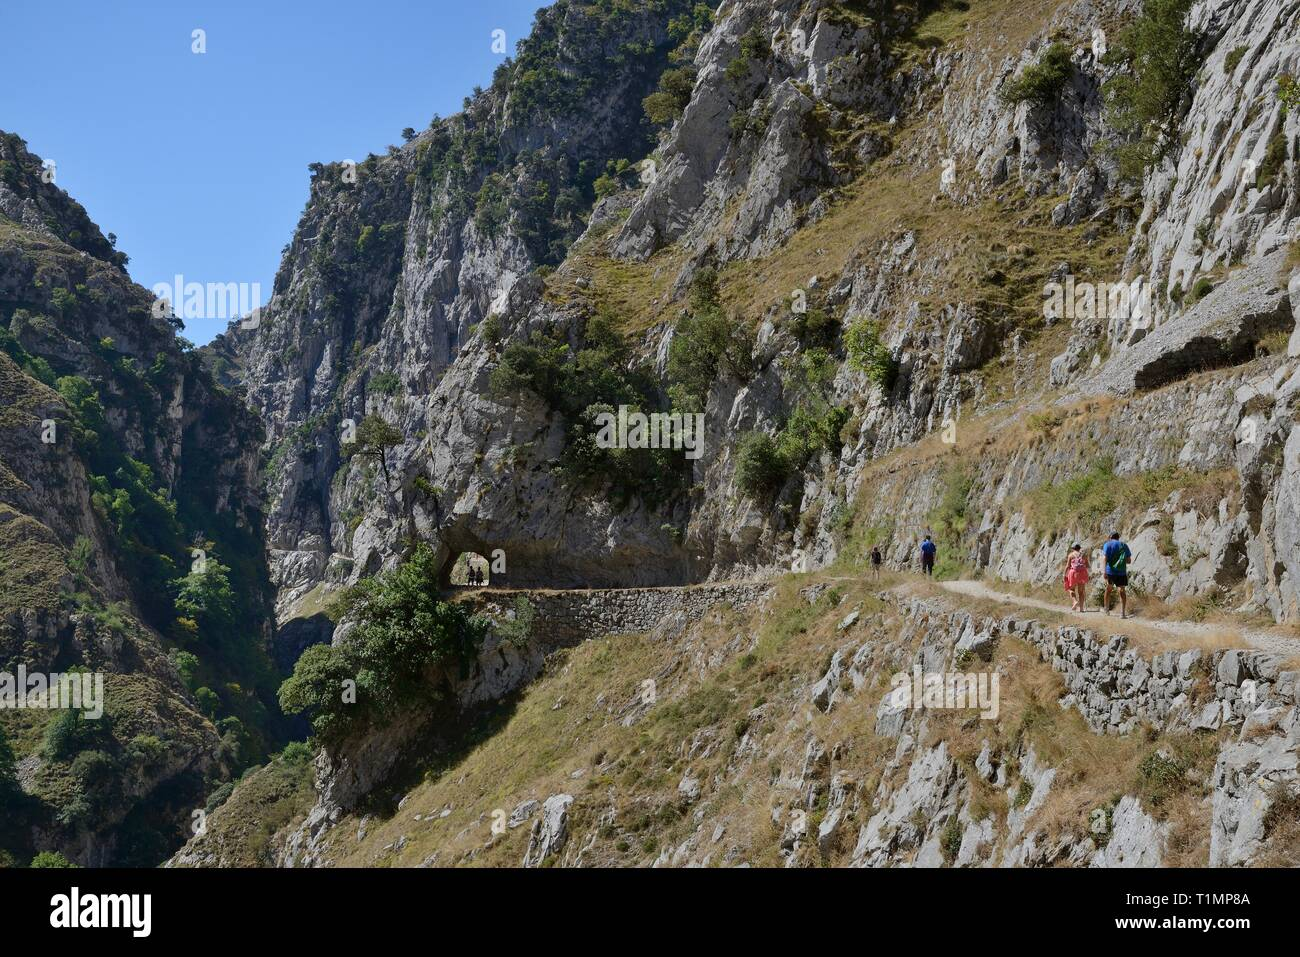 Hikers on the Cares Gorge trail, with some going through an excavated rock tunnel, Picos de Europa mountains, Asturias, Spain, August 2016. - Stock Image